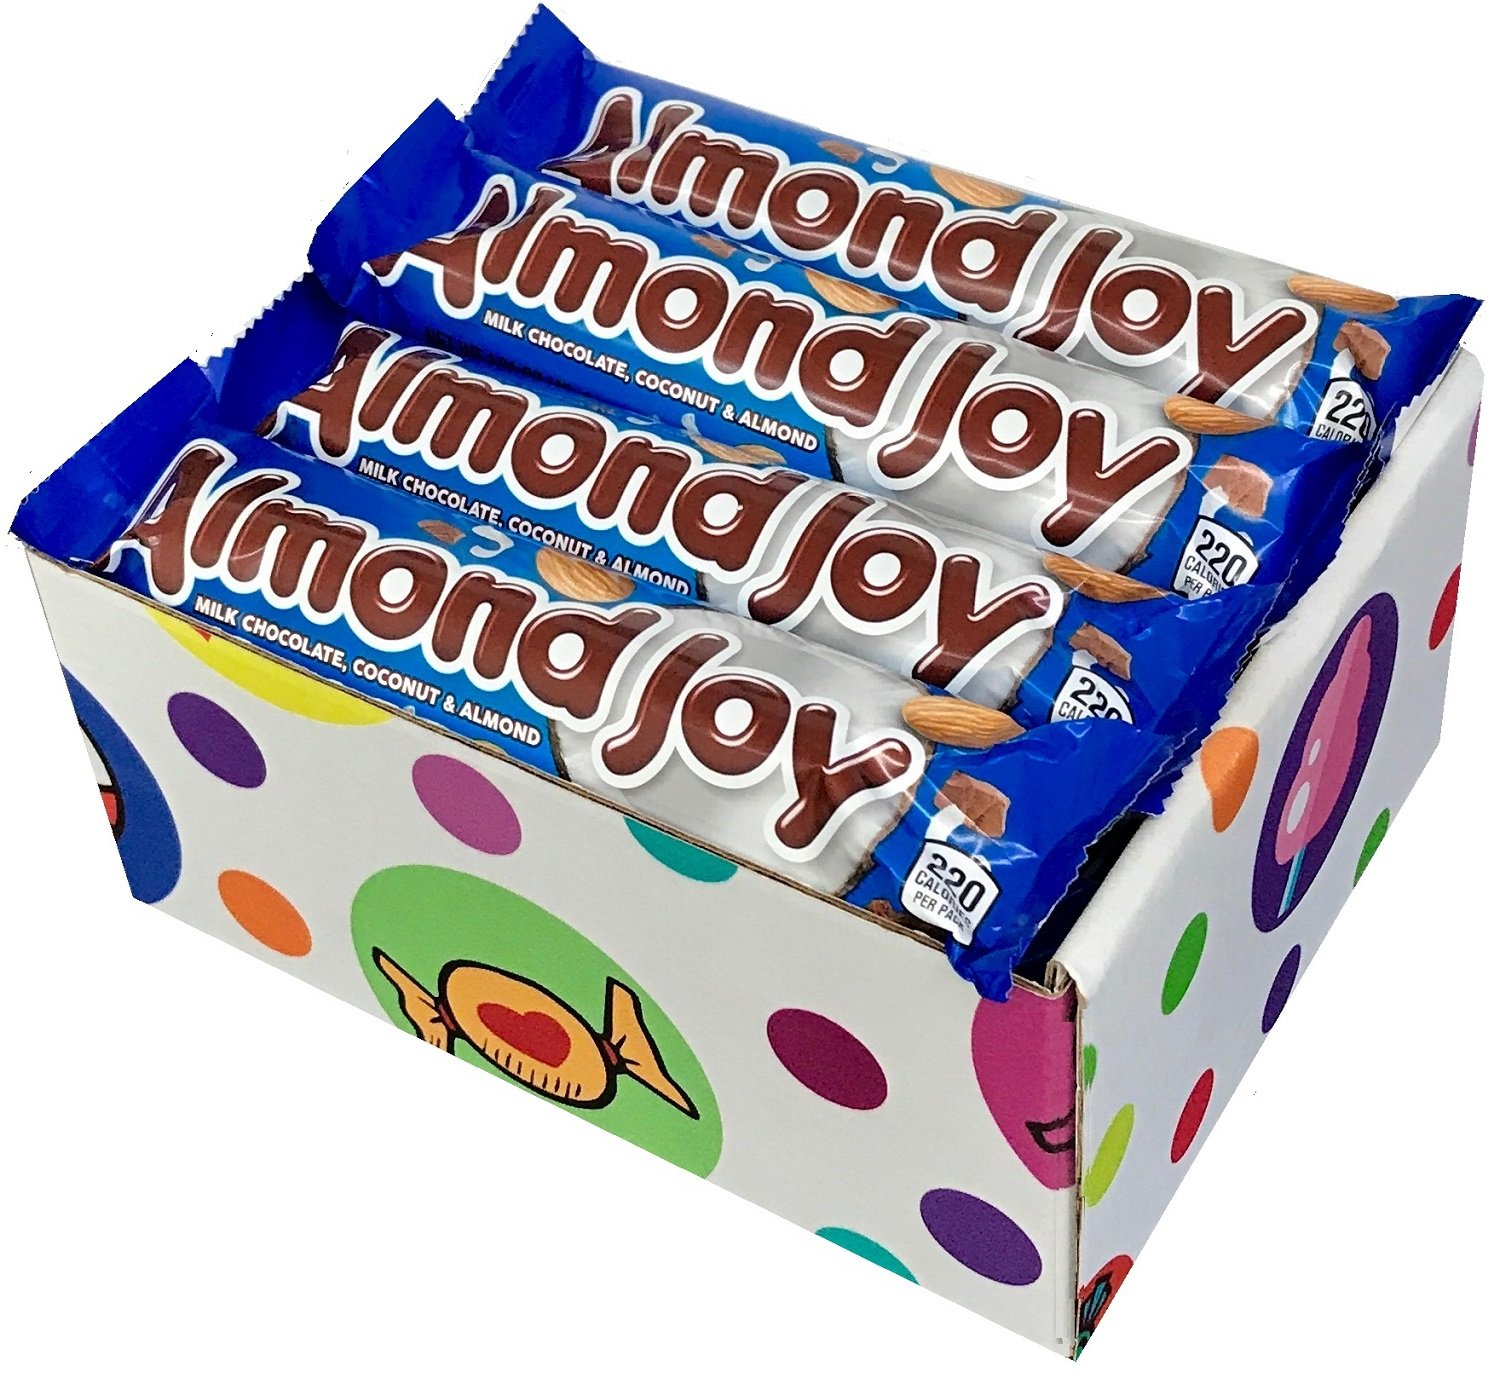 Almond Joy Candy Bars (Pack of 16) By CandyLab by CandyLab